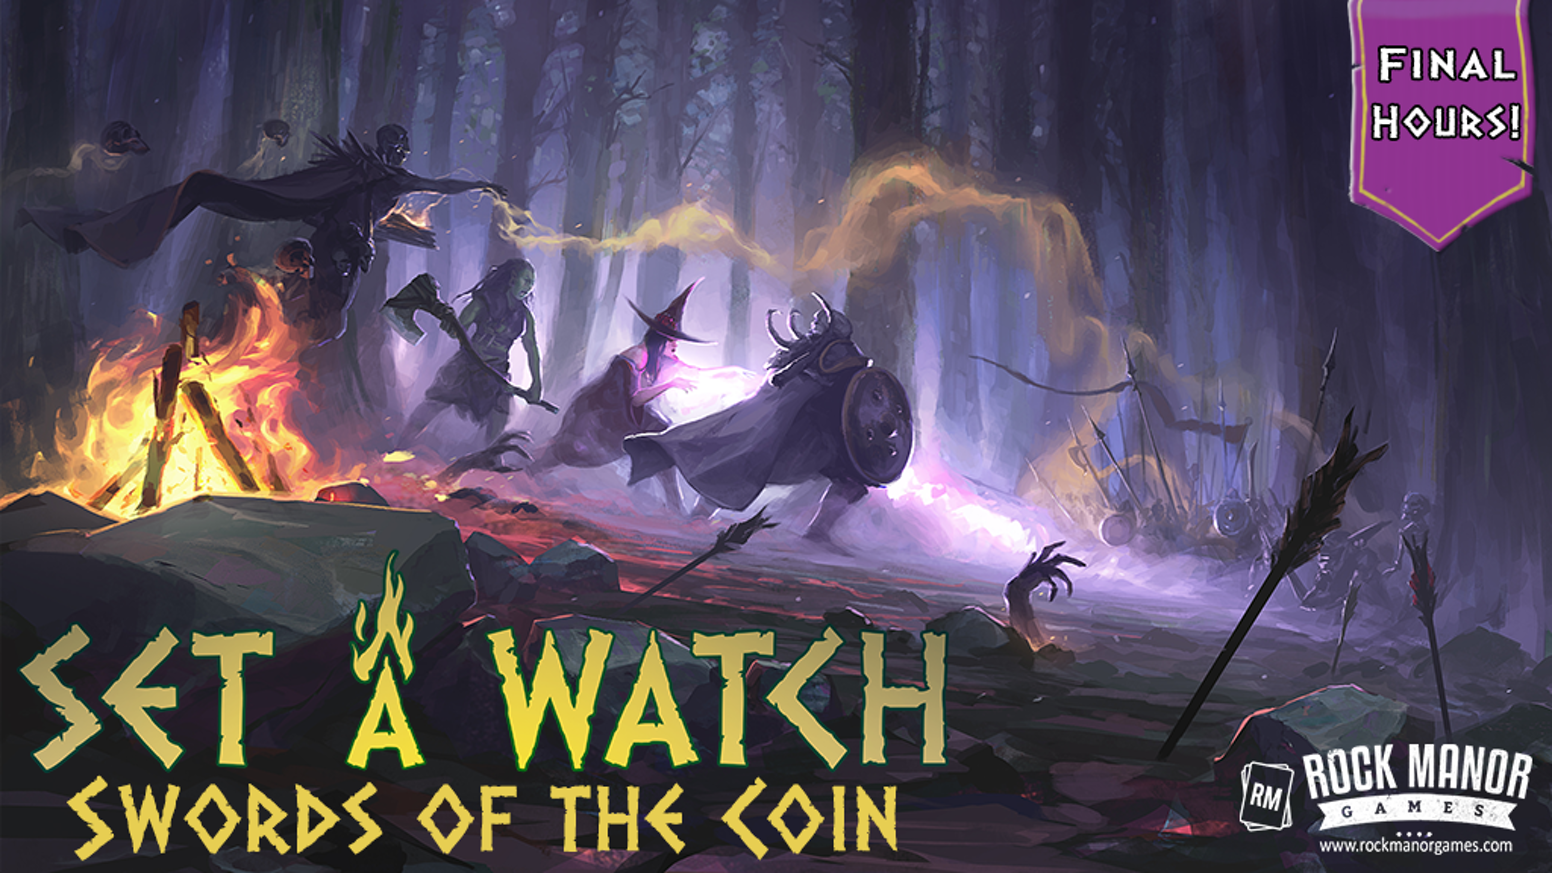 The highly anticipated stand alone expansion to our acclaimed 1-4 player cooperative game, Set a Watch